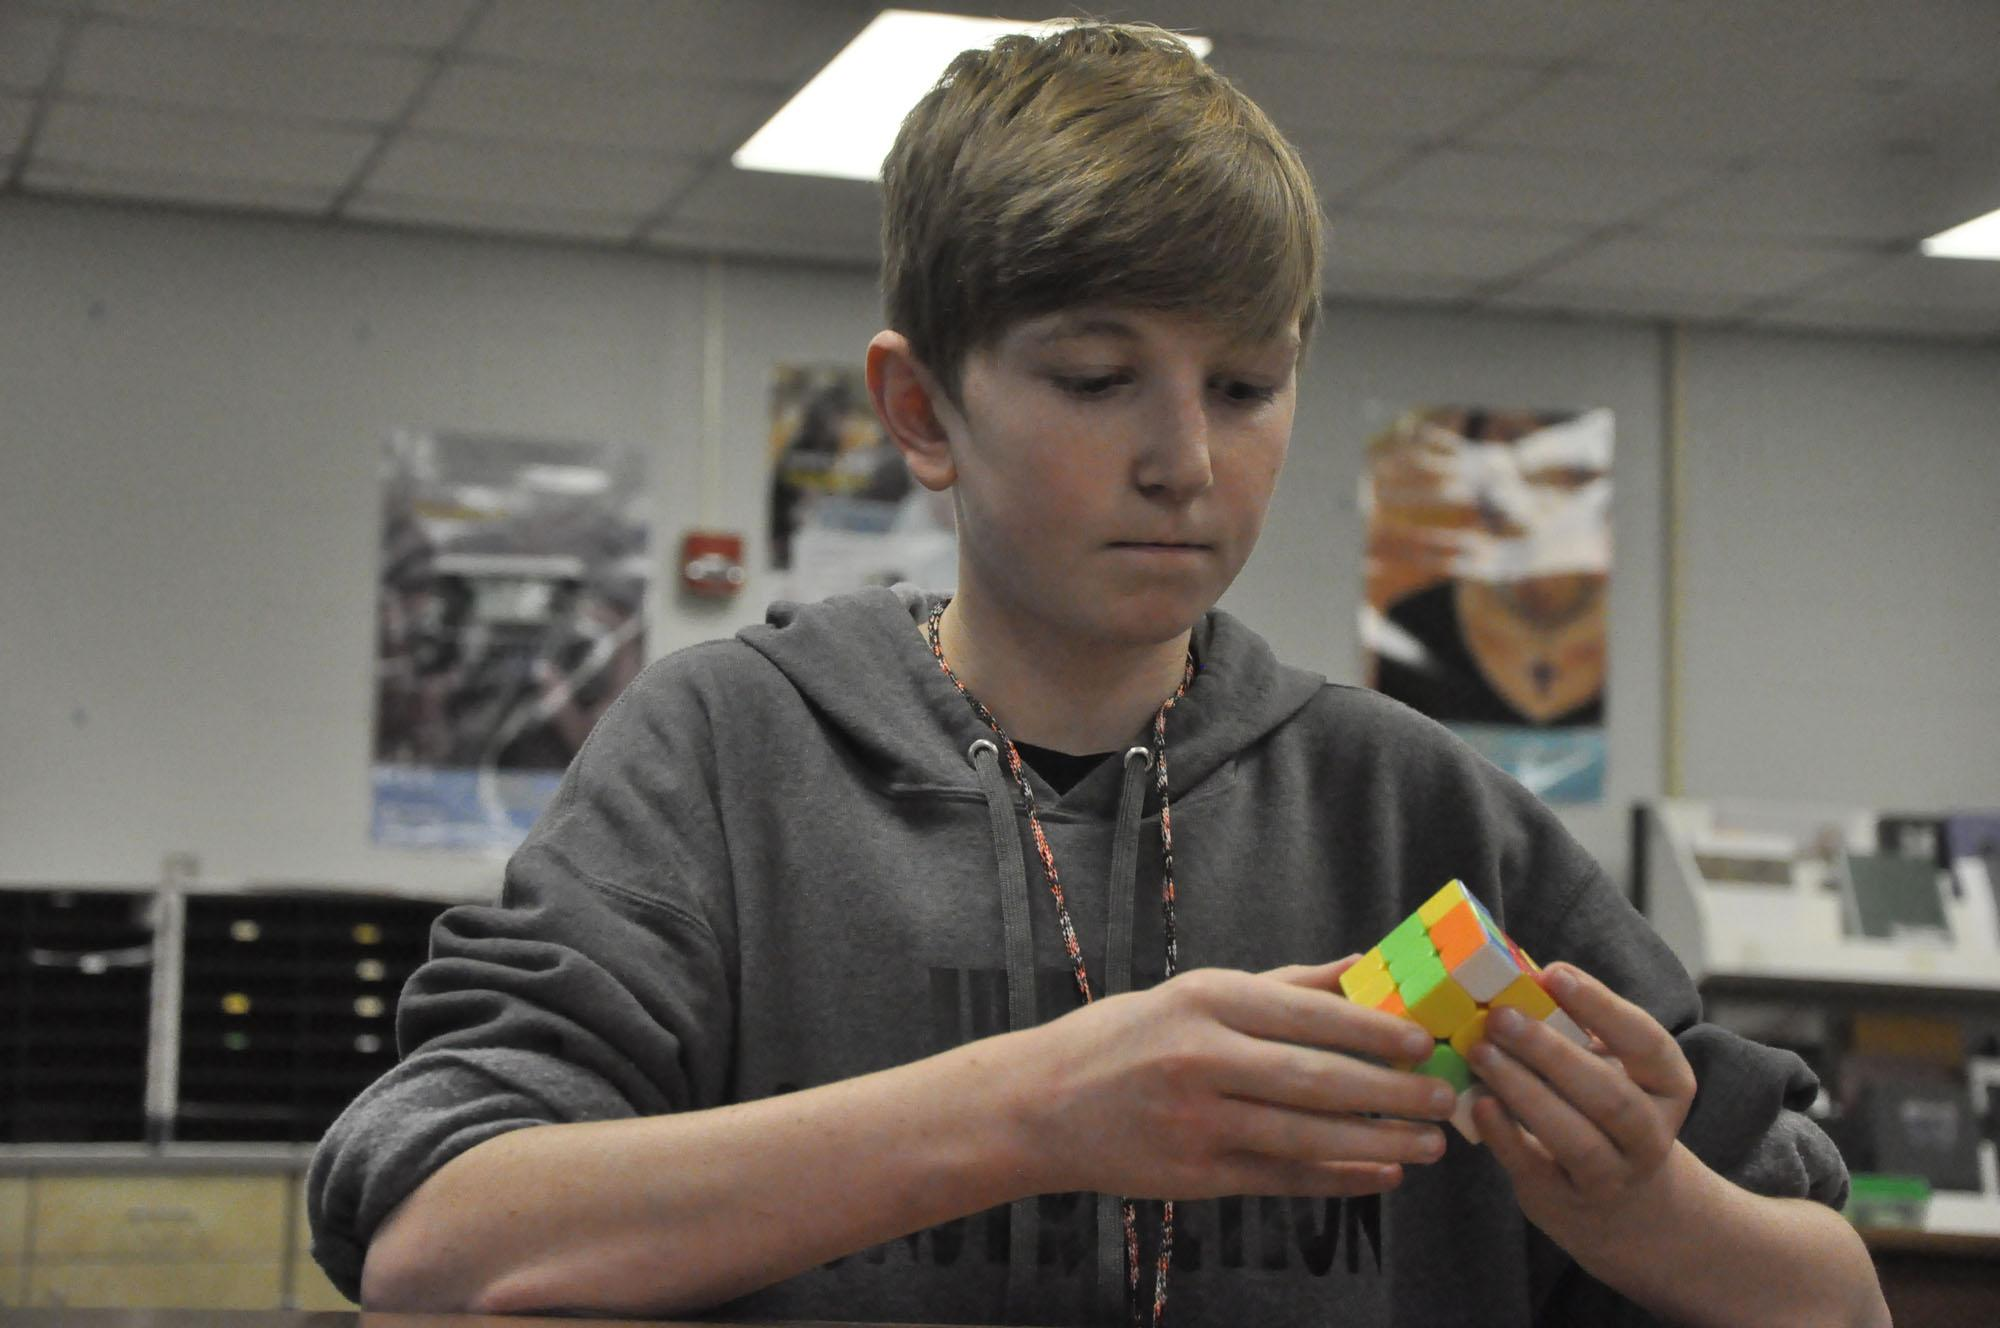 Tim Reed contemplates his favorite puzzle.